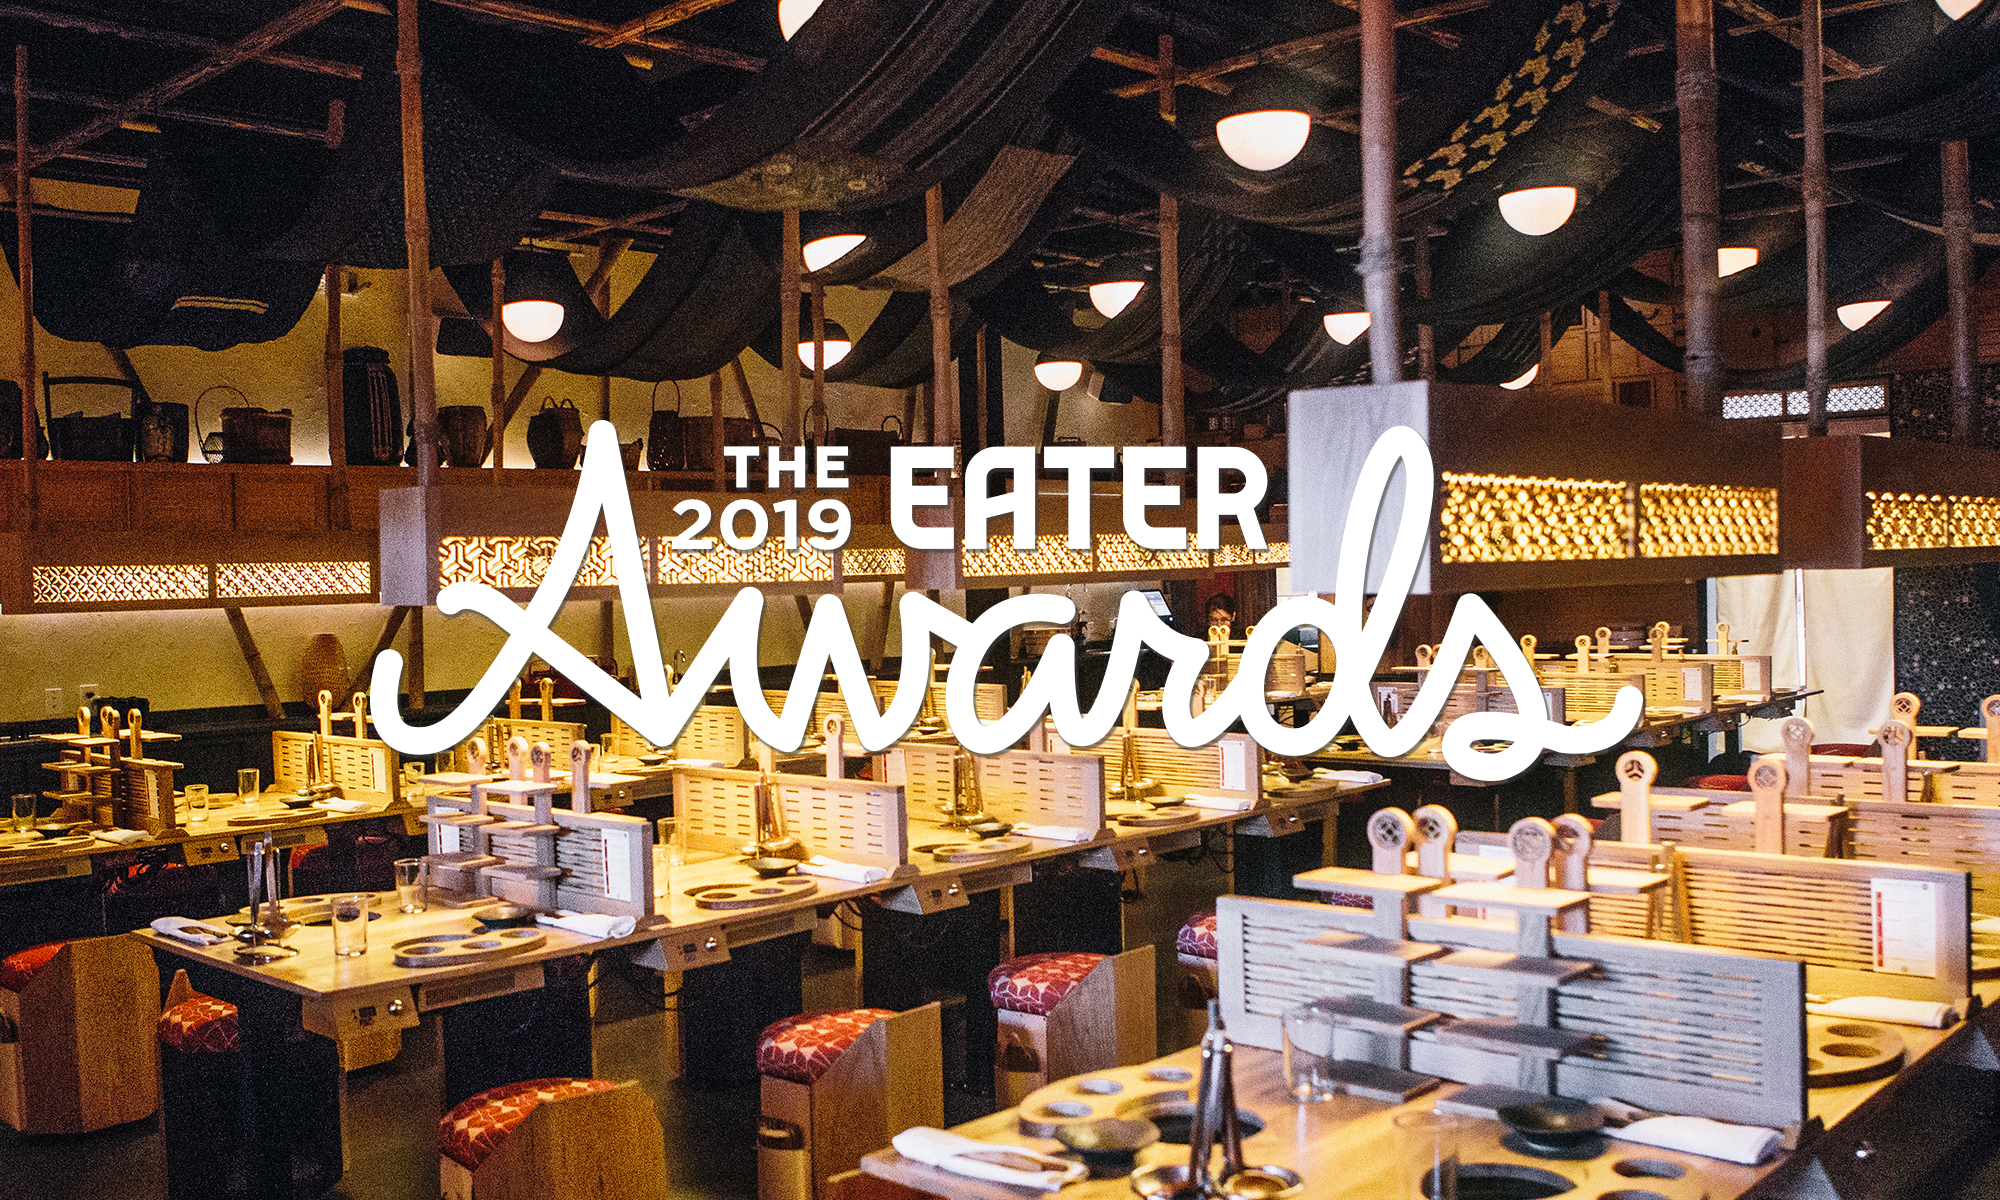 """The dining room of DipDipDip Tatsu-ya overlaid with text that says """"The 2019 Eater Awards"""""""